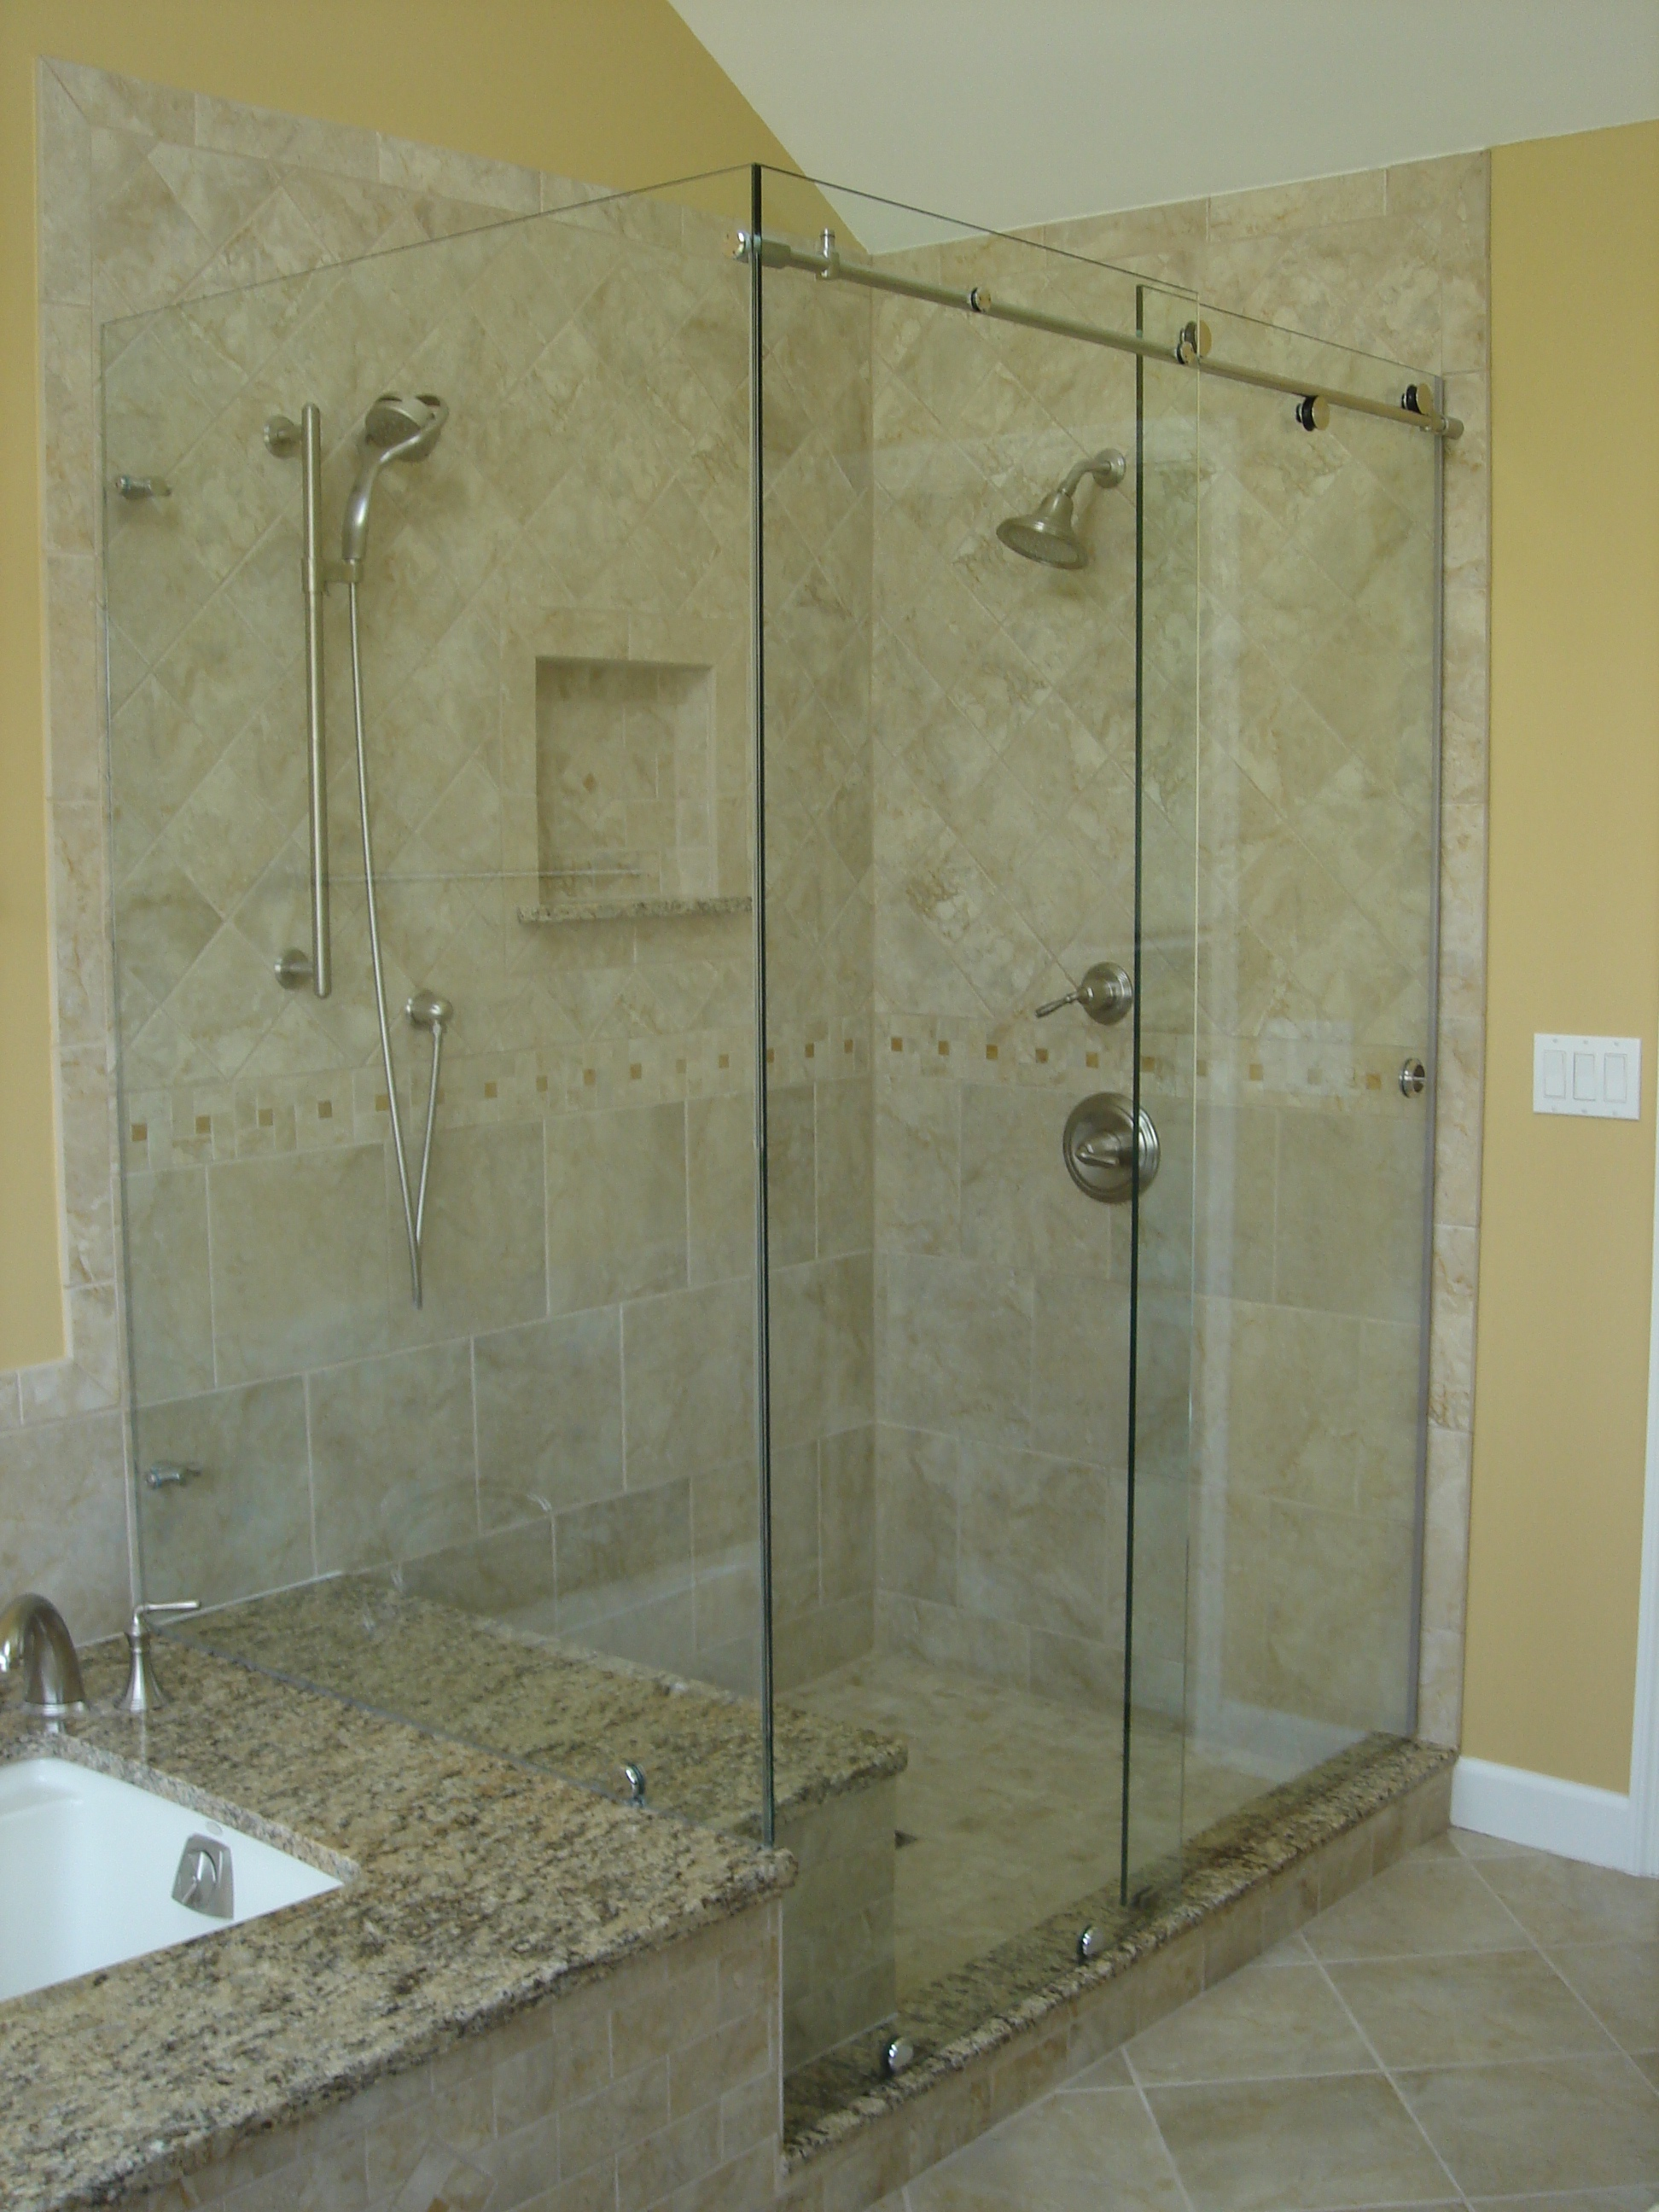 Bypass Sliding Shower Doors Modern Glass Designs